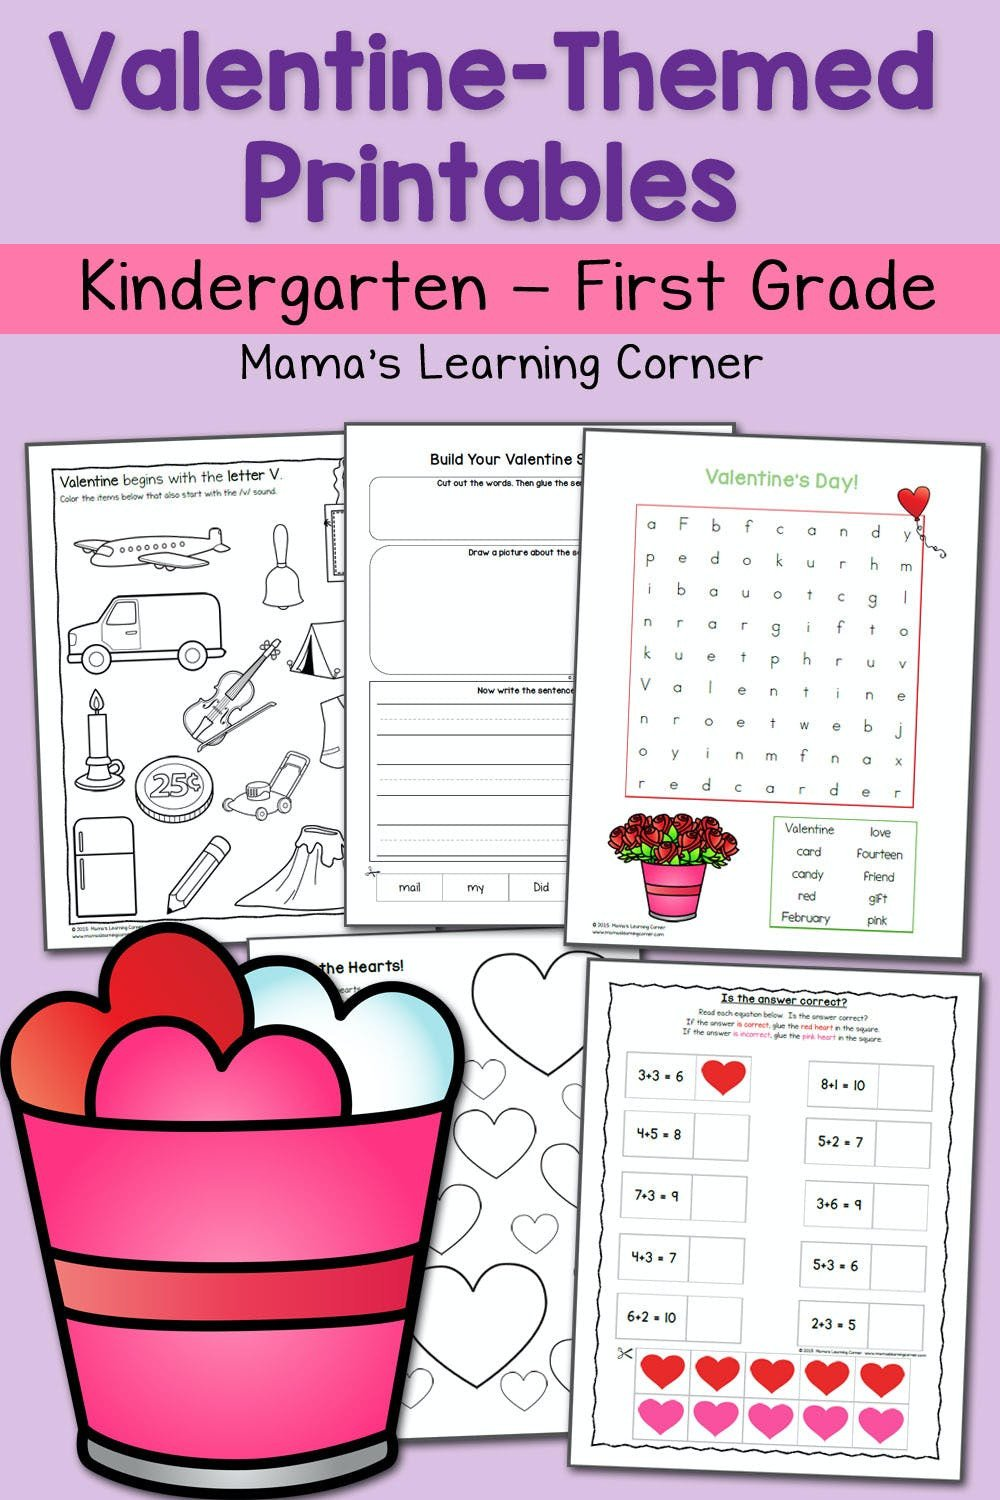 Kindergarten Valentine Math Worksheets Valentine Worksheets for Kindergarten and First Grade